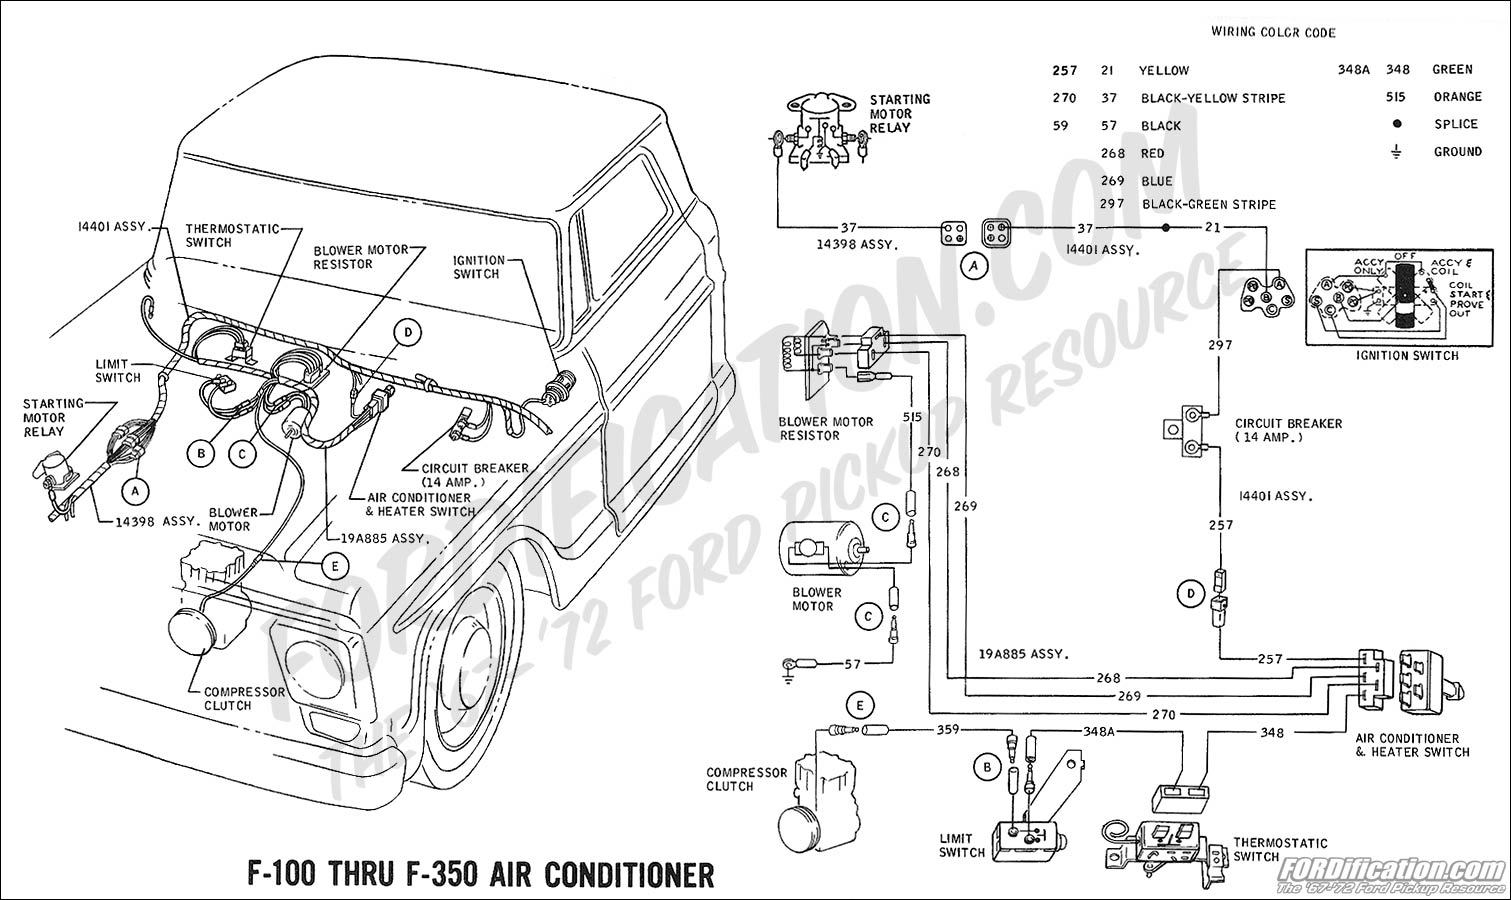 1999 ford explorer wiring diagram john deere lawn mower ignition switch 2008 dash diagrams schematic heat grill